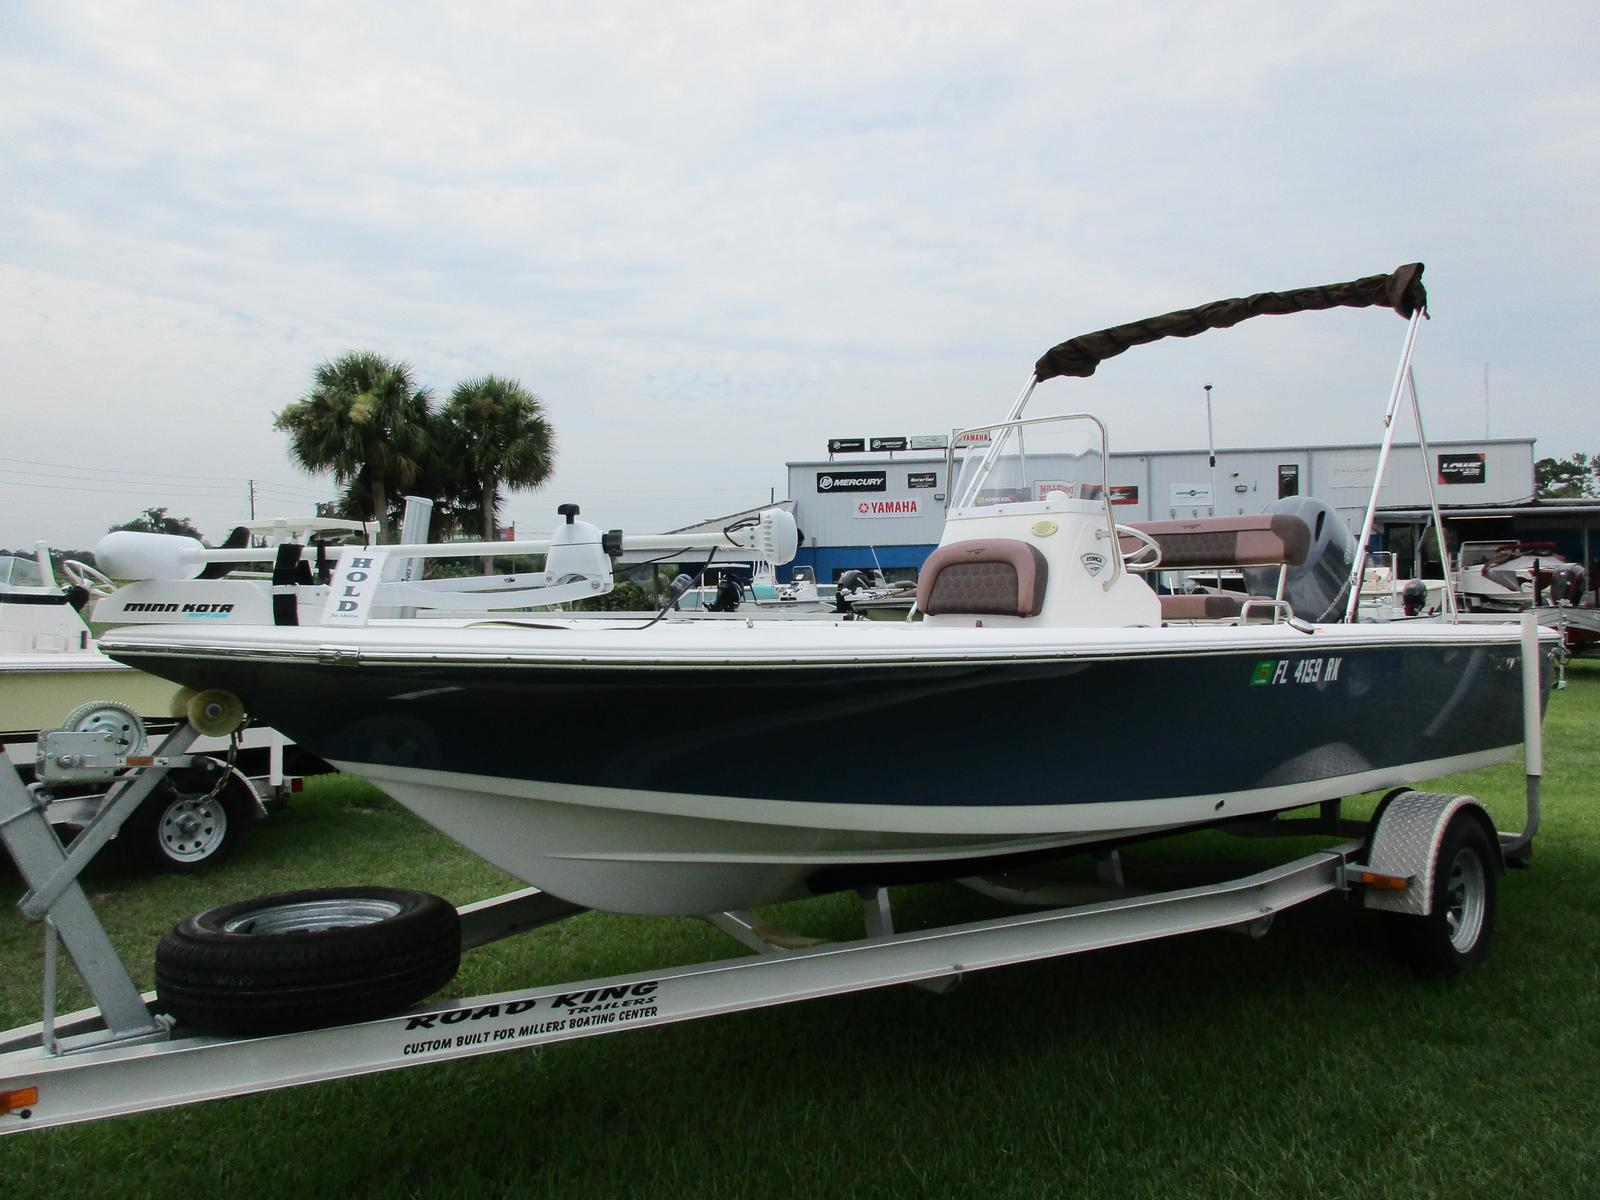 In-Stock New and Used Models For Sale in Ocala, FL | Millers Boating